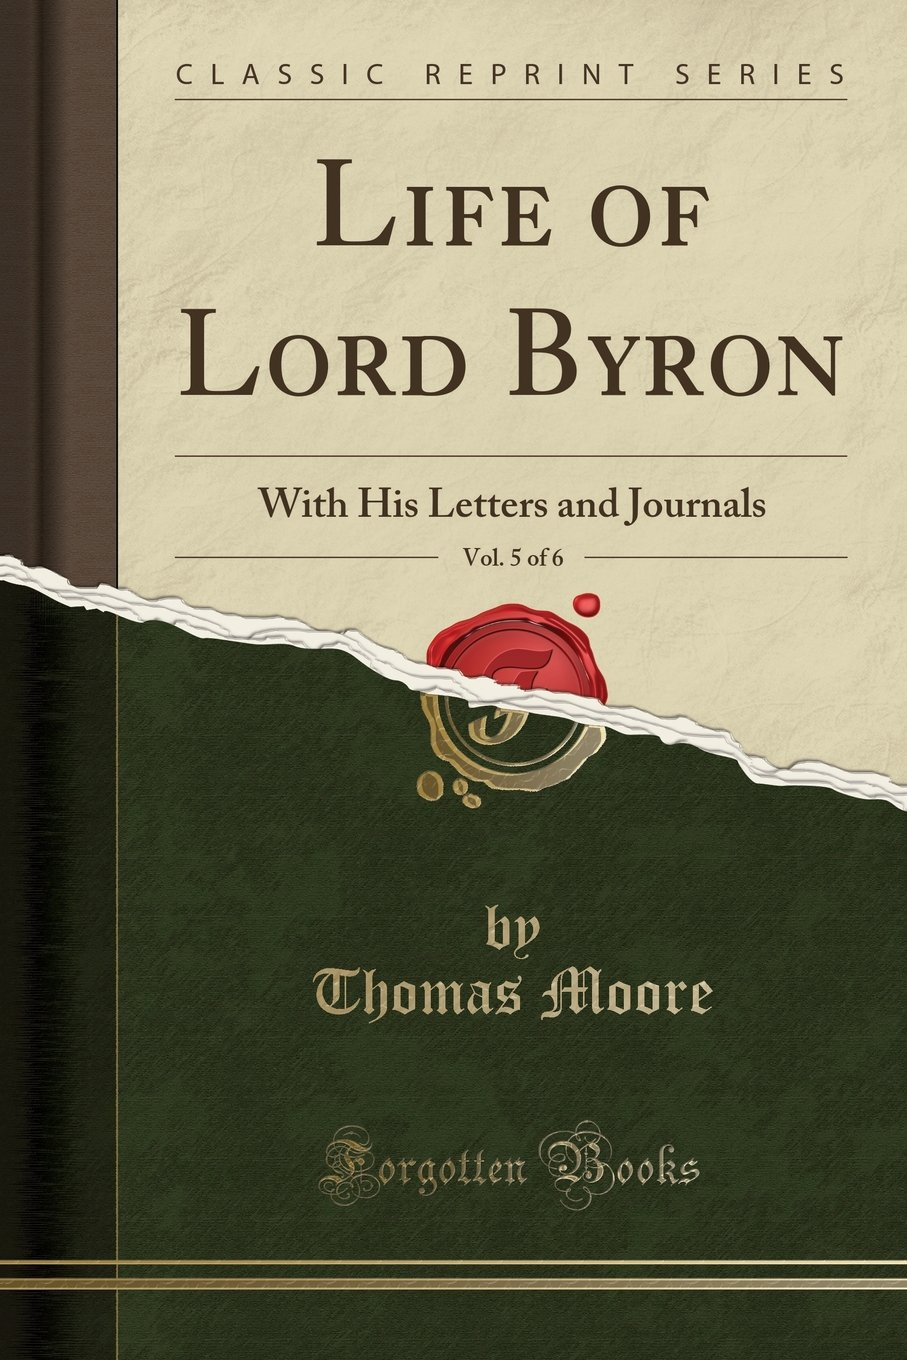 Life of Lord Byron, Vol. 5 of 6: With His Letters and Journals (Classic Reprint) ebook